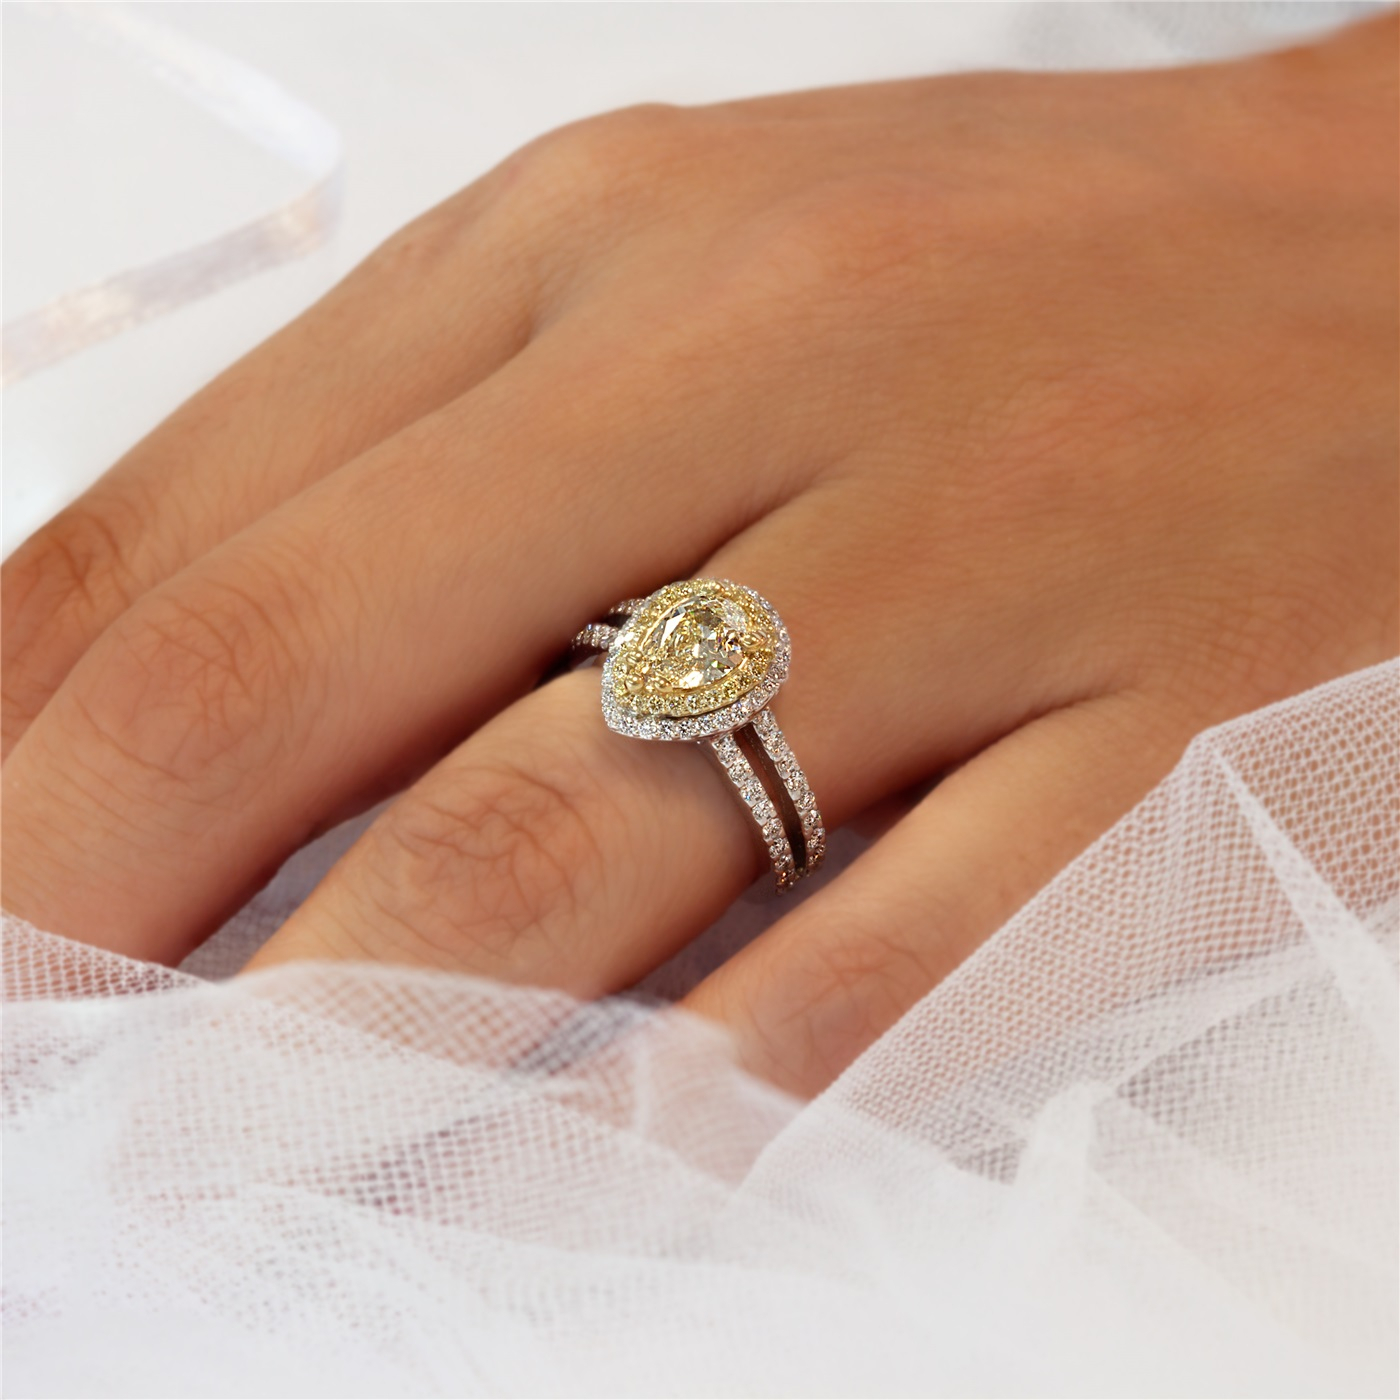 Fancy Yellow Pear Shaped Diamond Ring – Pear Shape Yellow Diamond  Engagement Ring Pertaining To Pear Shaped Engagement Rings (Gallery 25 of 25)